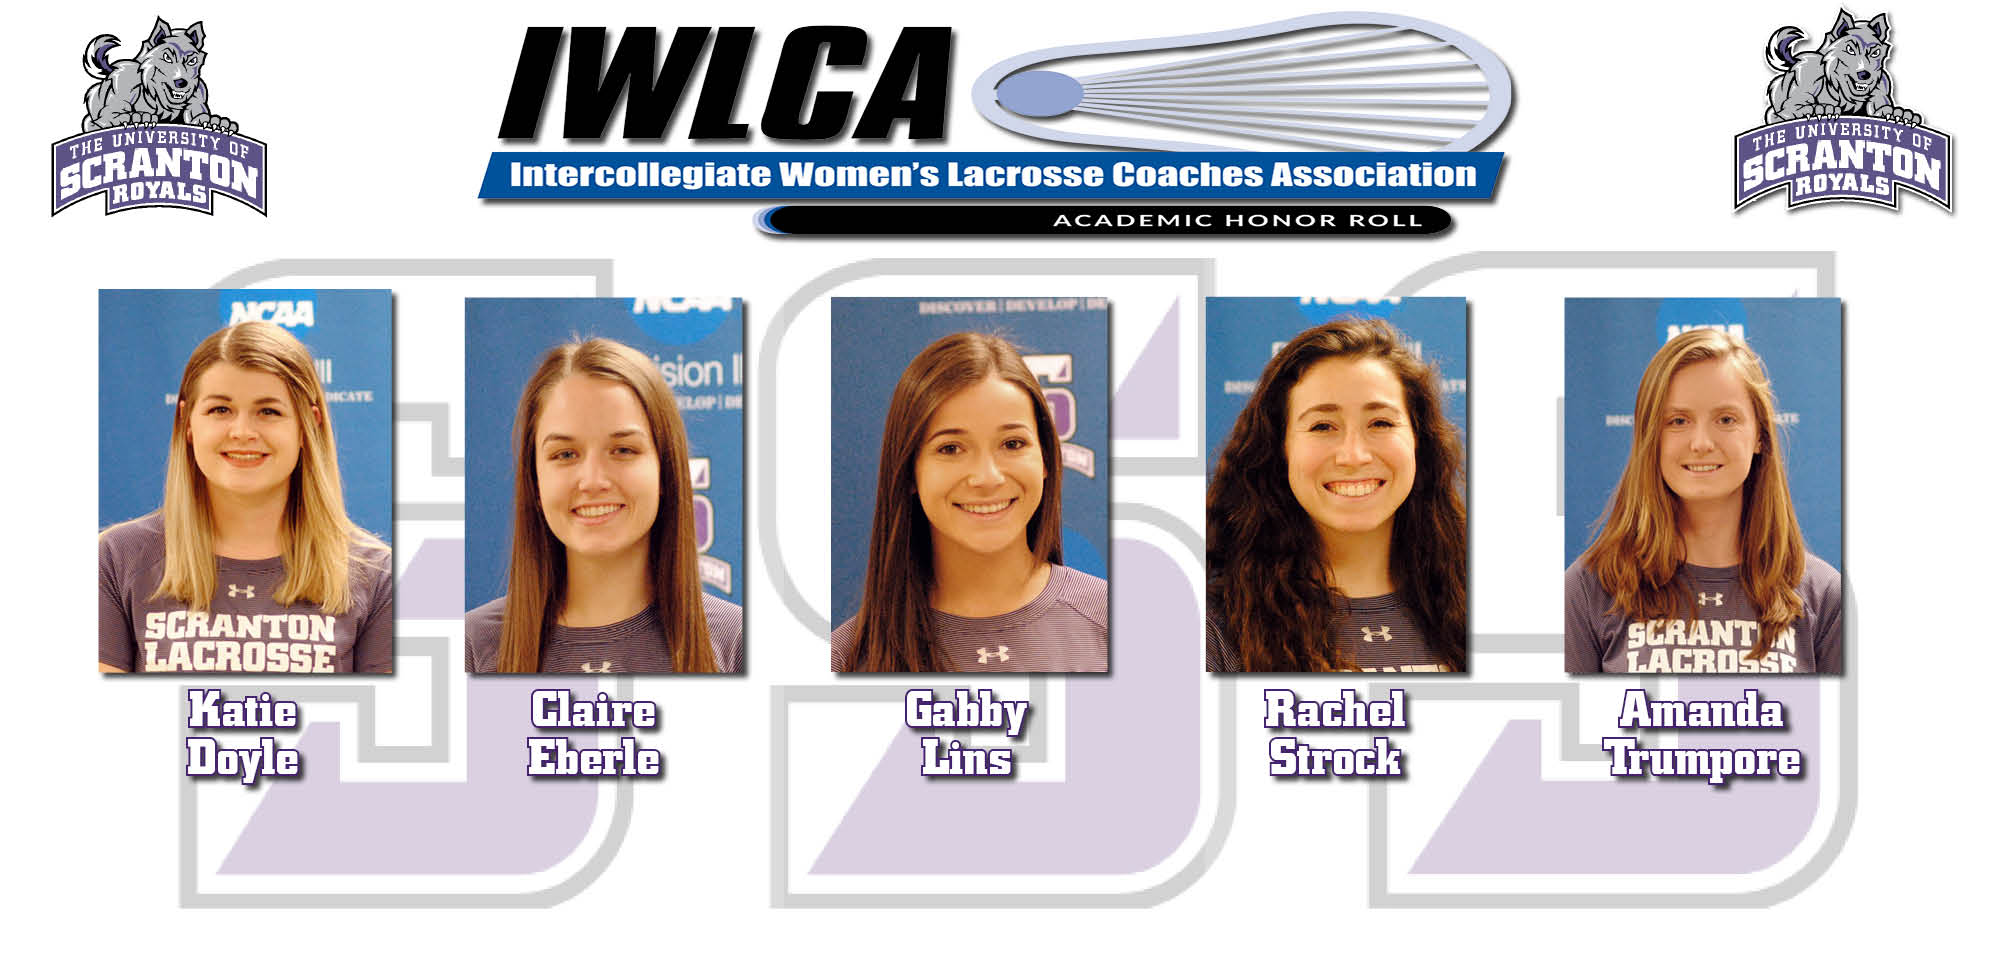 Katie Doyle, Claire Eberle, Gabby Lins, Rachel Strock, and Amanda Trumpore have been named to the IWLCA Academic Honor Roll.